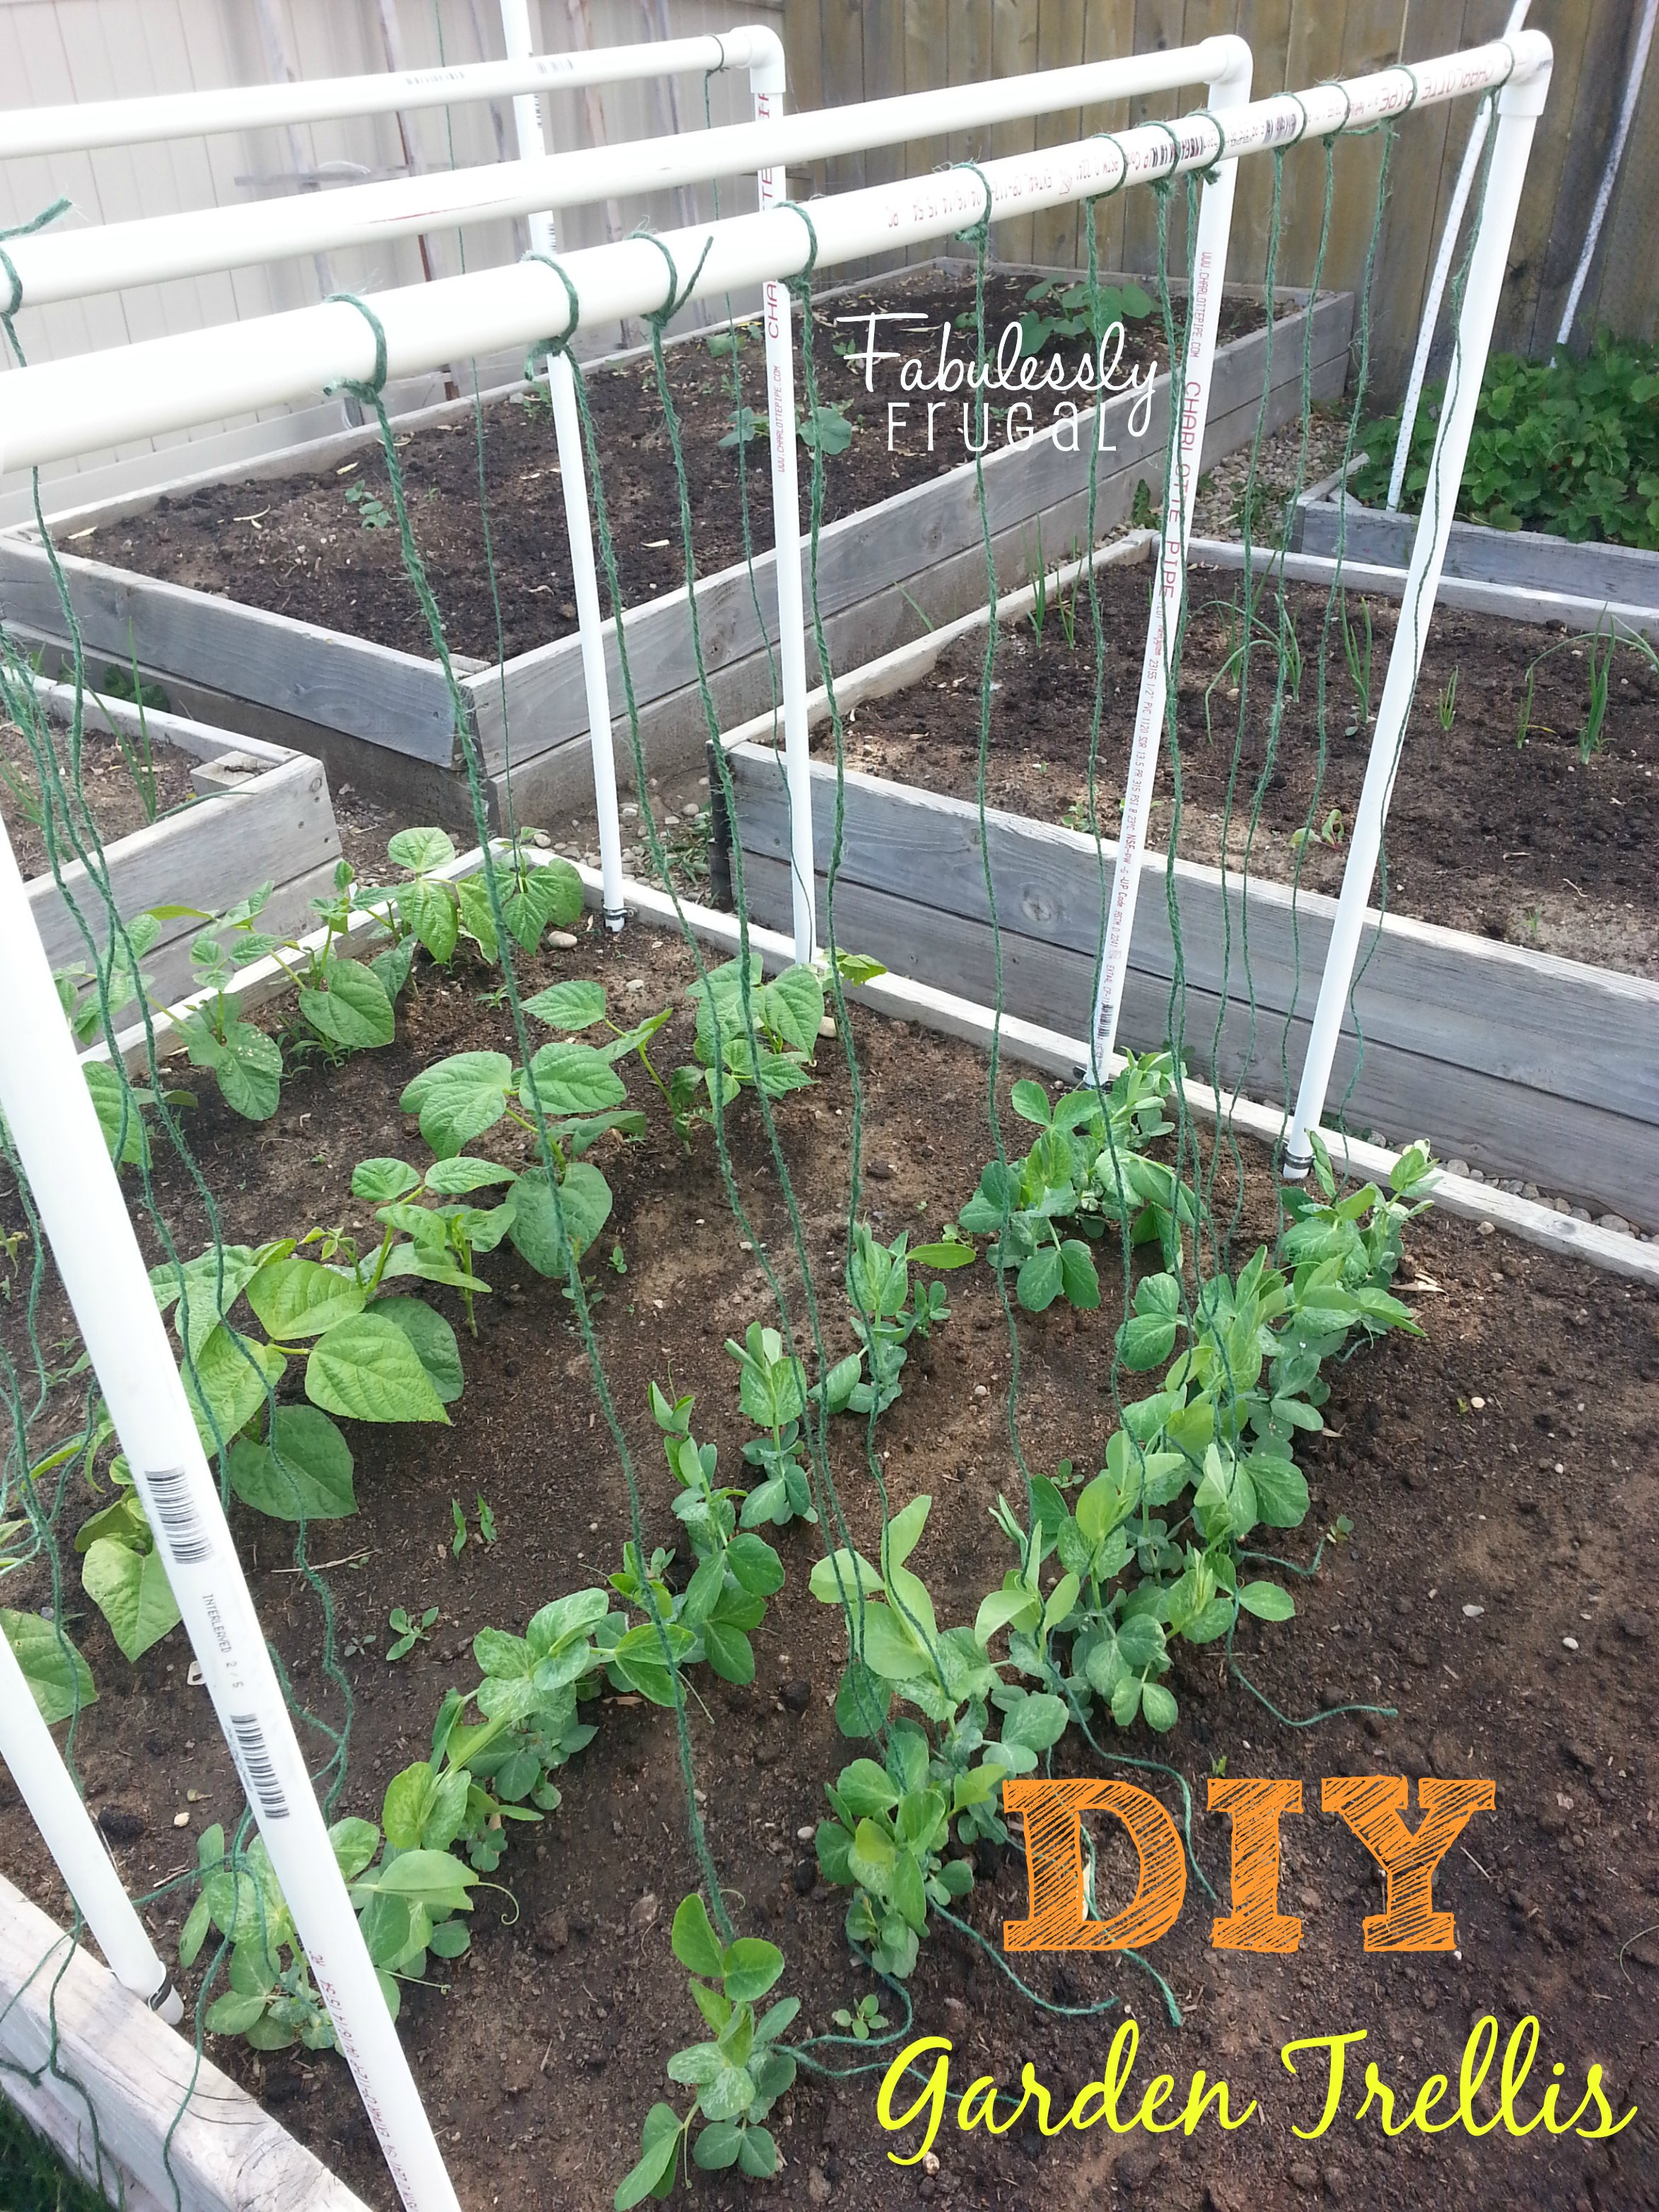 I Donu0027t Know About You, But My Garden Has Just Been Growing Like Crazy This  Past Week. I Have Waited To Put In A Trellis For My Beans And Peas Because  I ...